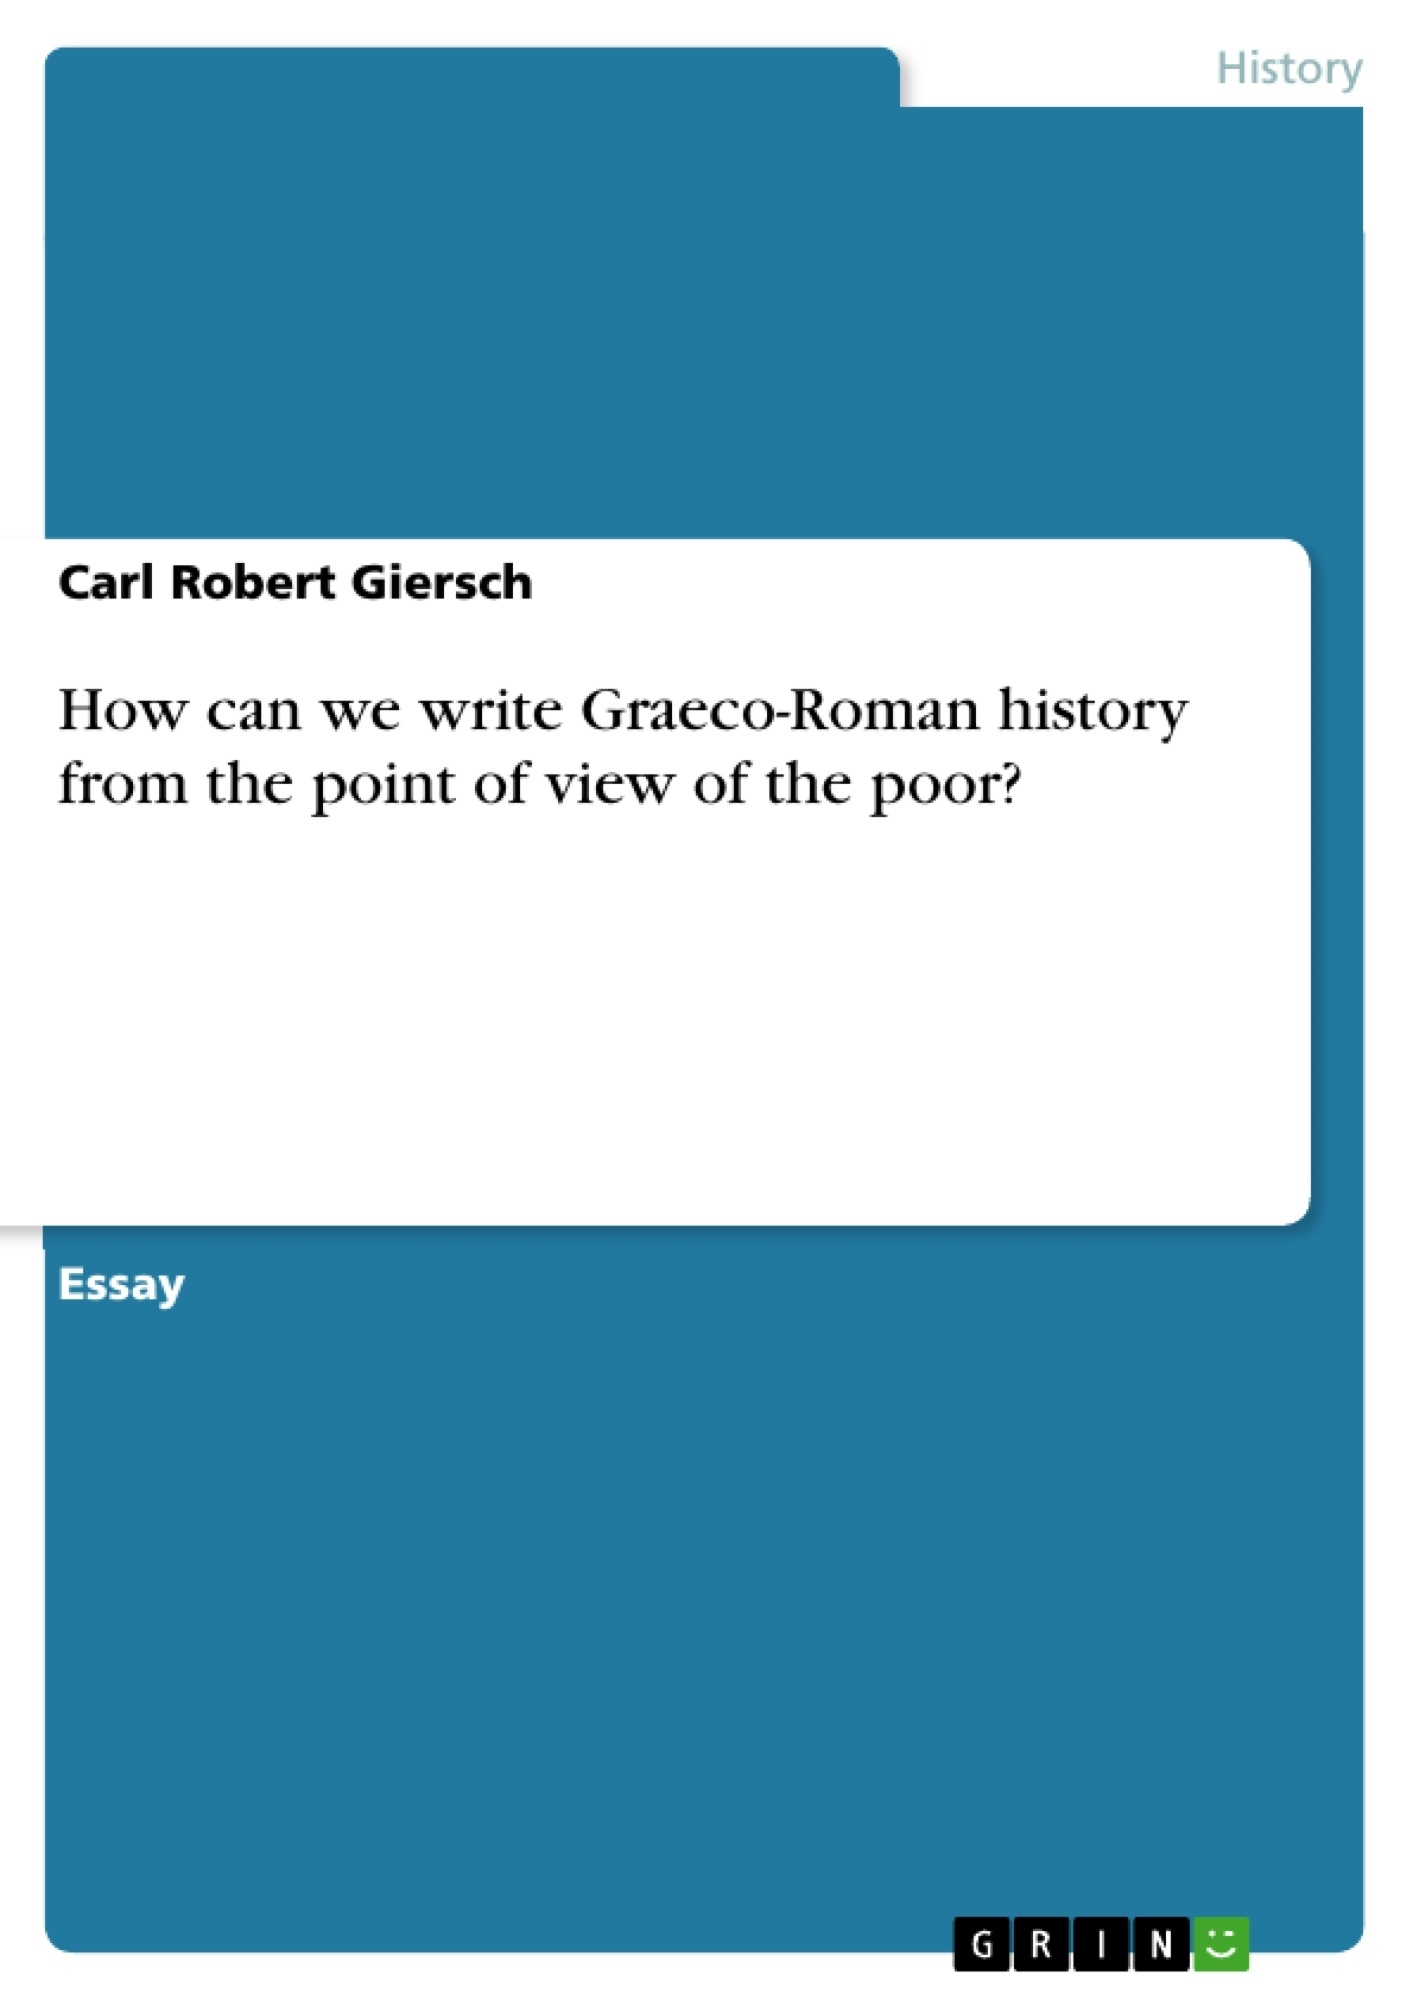 Title: How can we write Graeco-Roman history from the point of view of the poor?